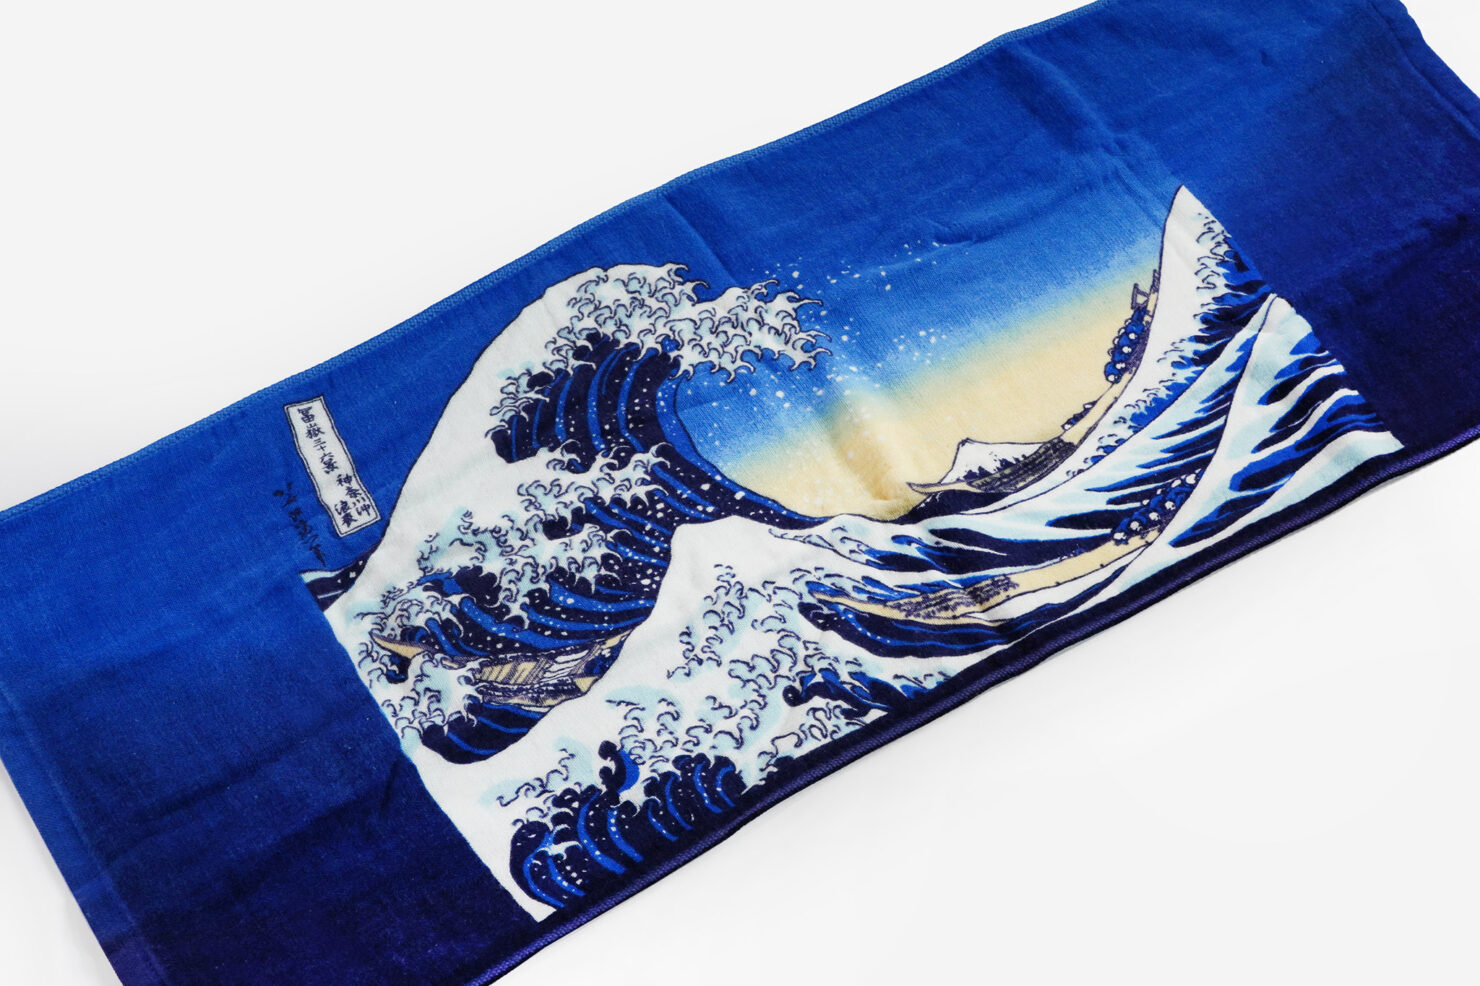 THE GREAT WAVE OF KANAGAWA FACE TOWEL - MARUSHIN